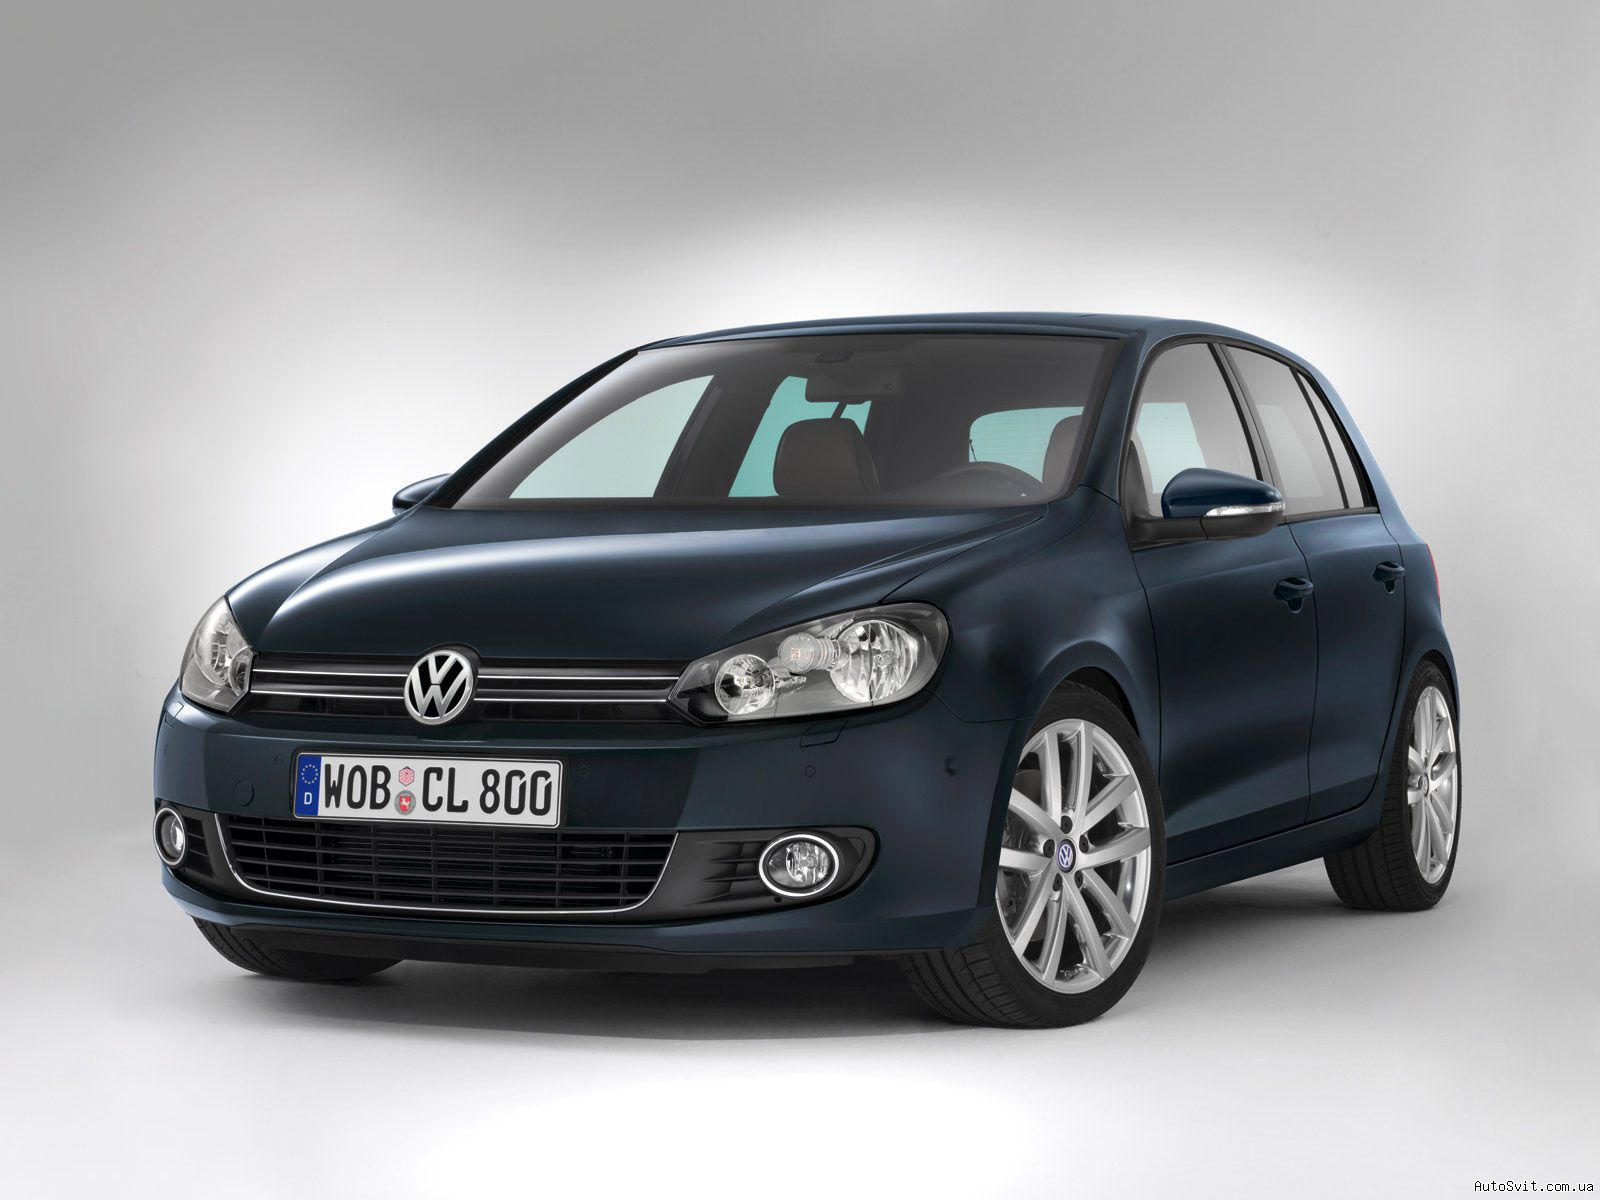 2008 Volkswagen Golf Hatchback 5-door